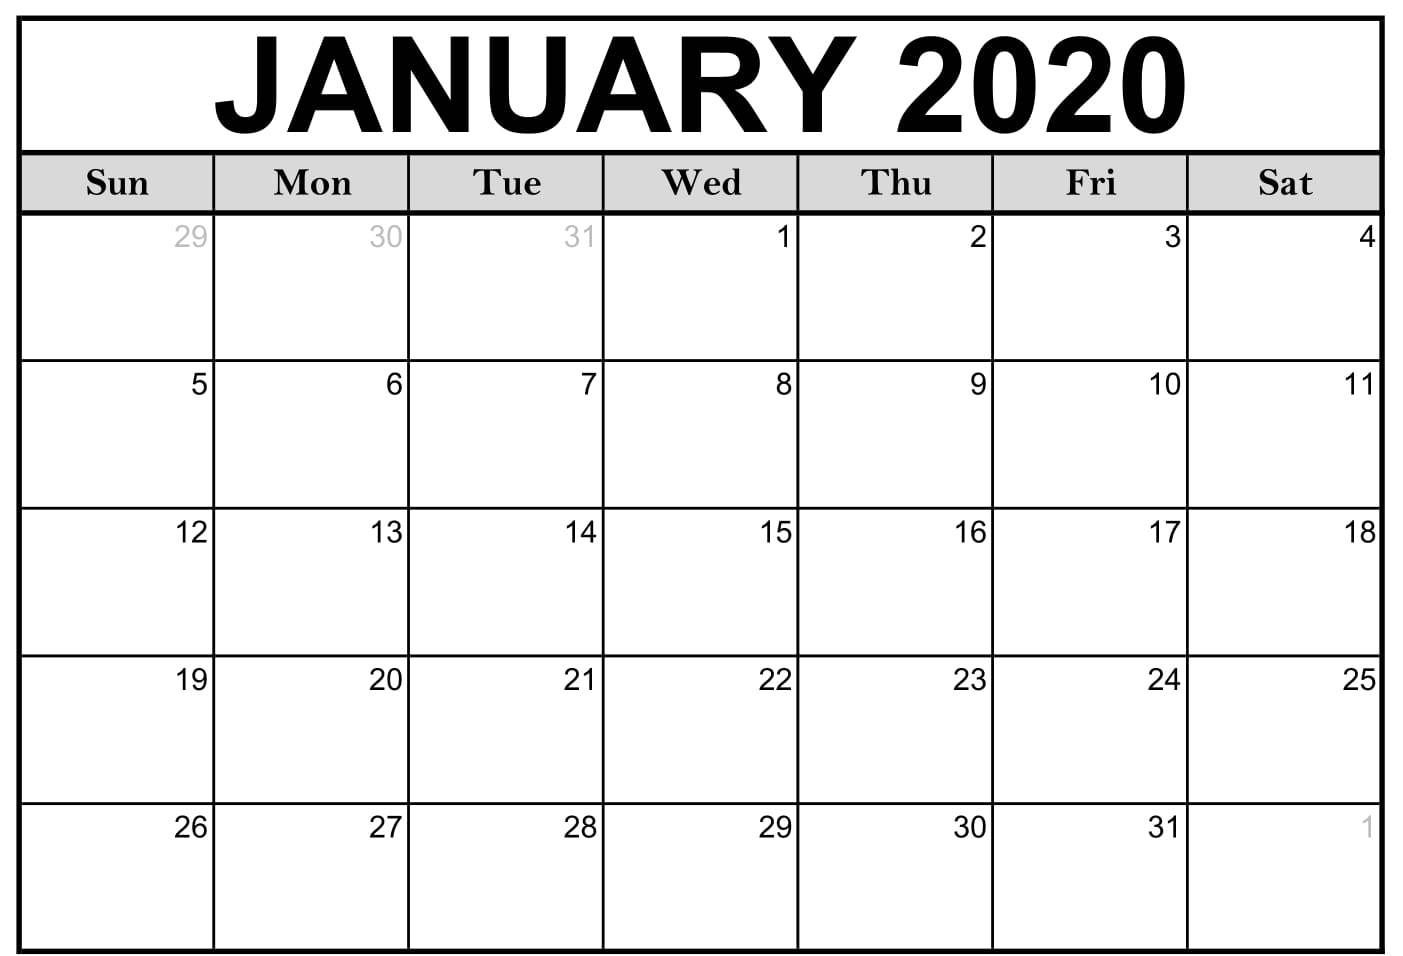 January 2020 Calendar Template | Printable Calendar Template throughout November Calendar Excel 2020